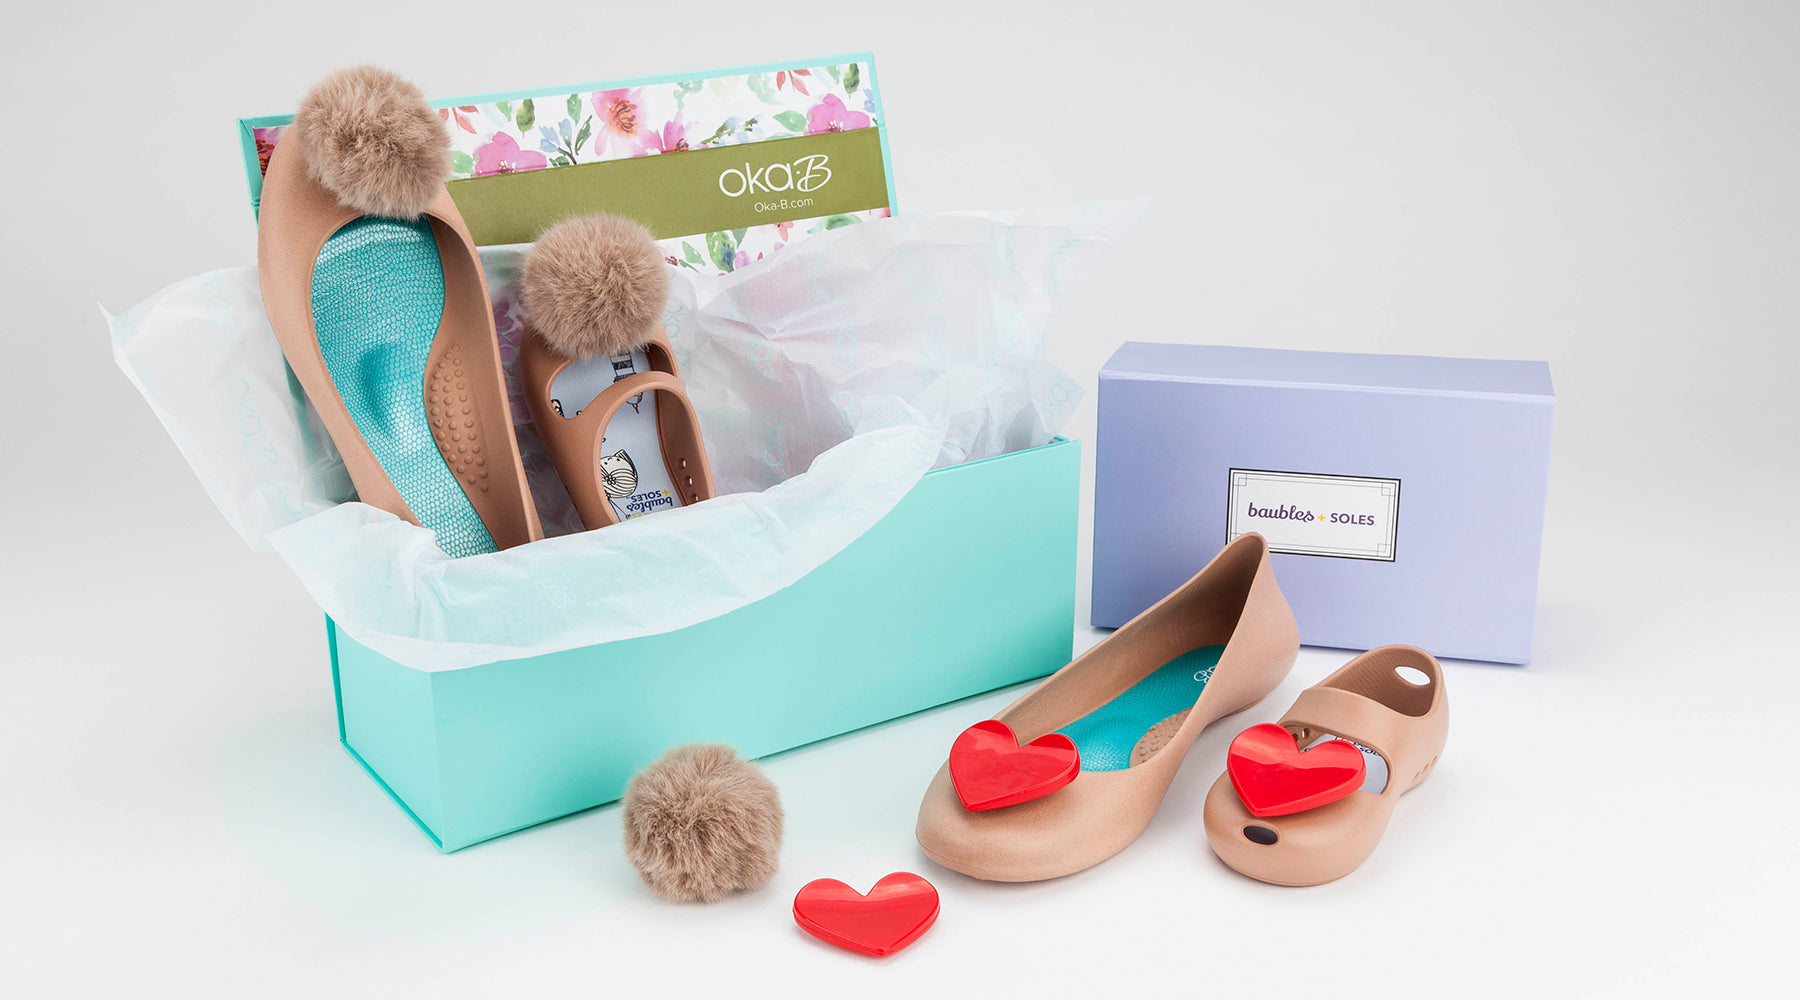 Mommy and Me shoes gift set by Oka-B and Baubles and Soles